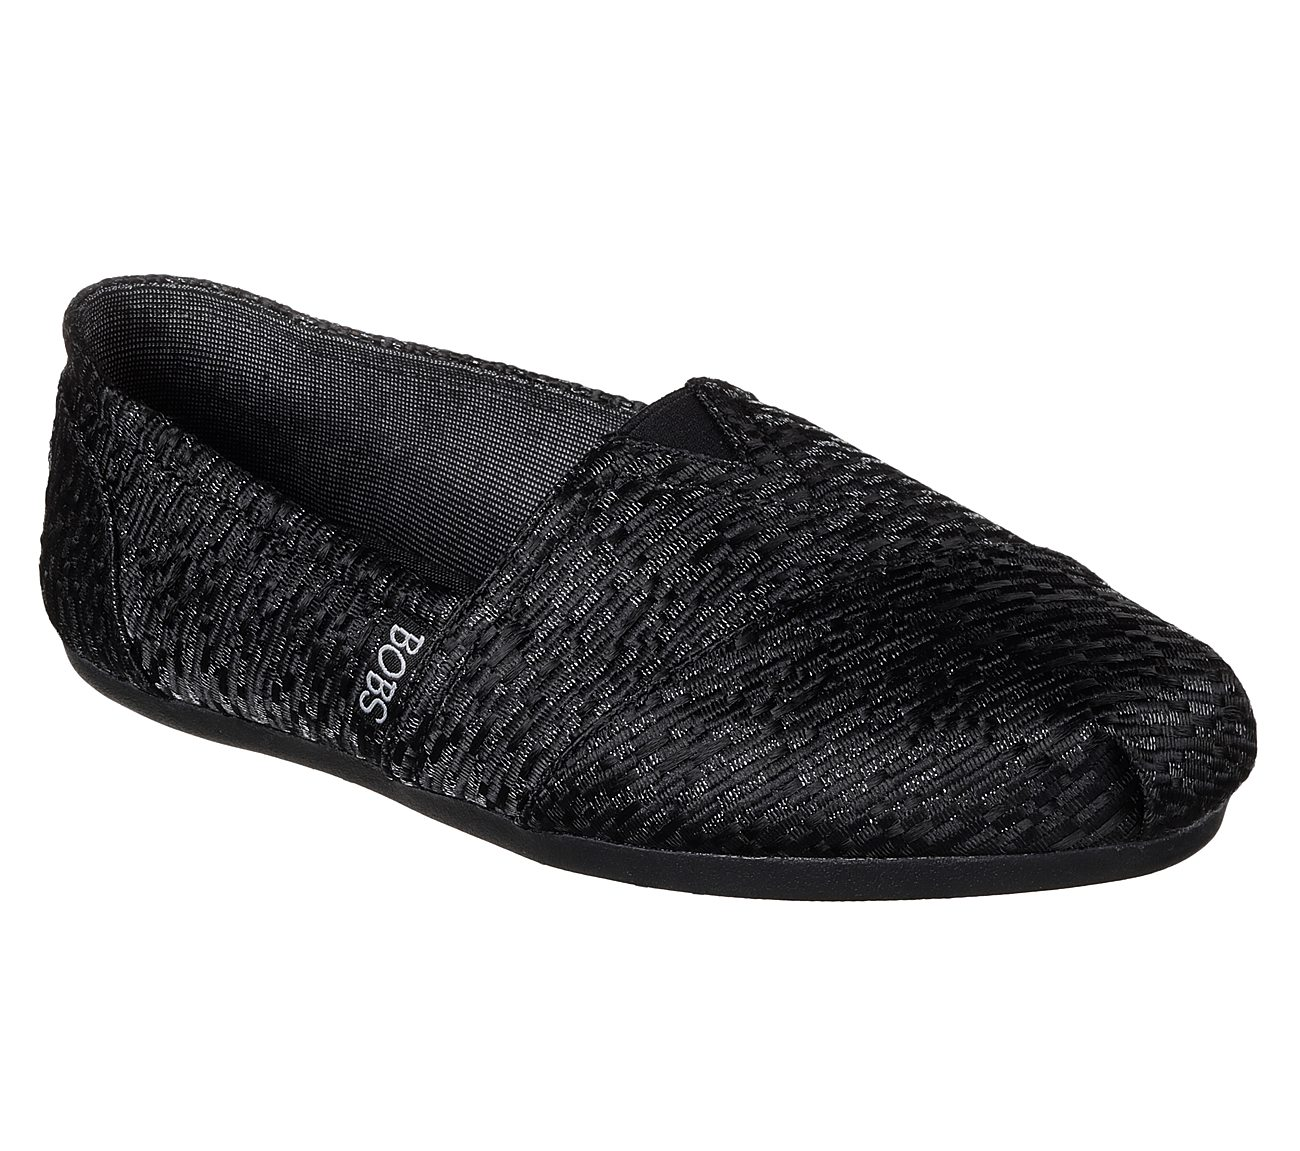 e2ca35684c Buy SKECHERS BOBS Plush - Jacquardy Party BOBS Shoes only $27.00